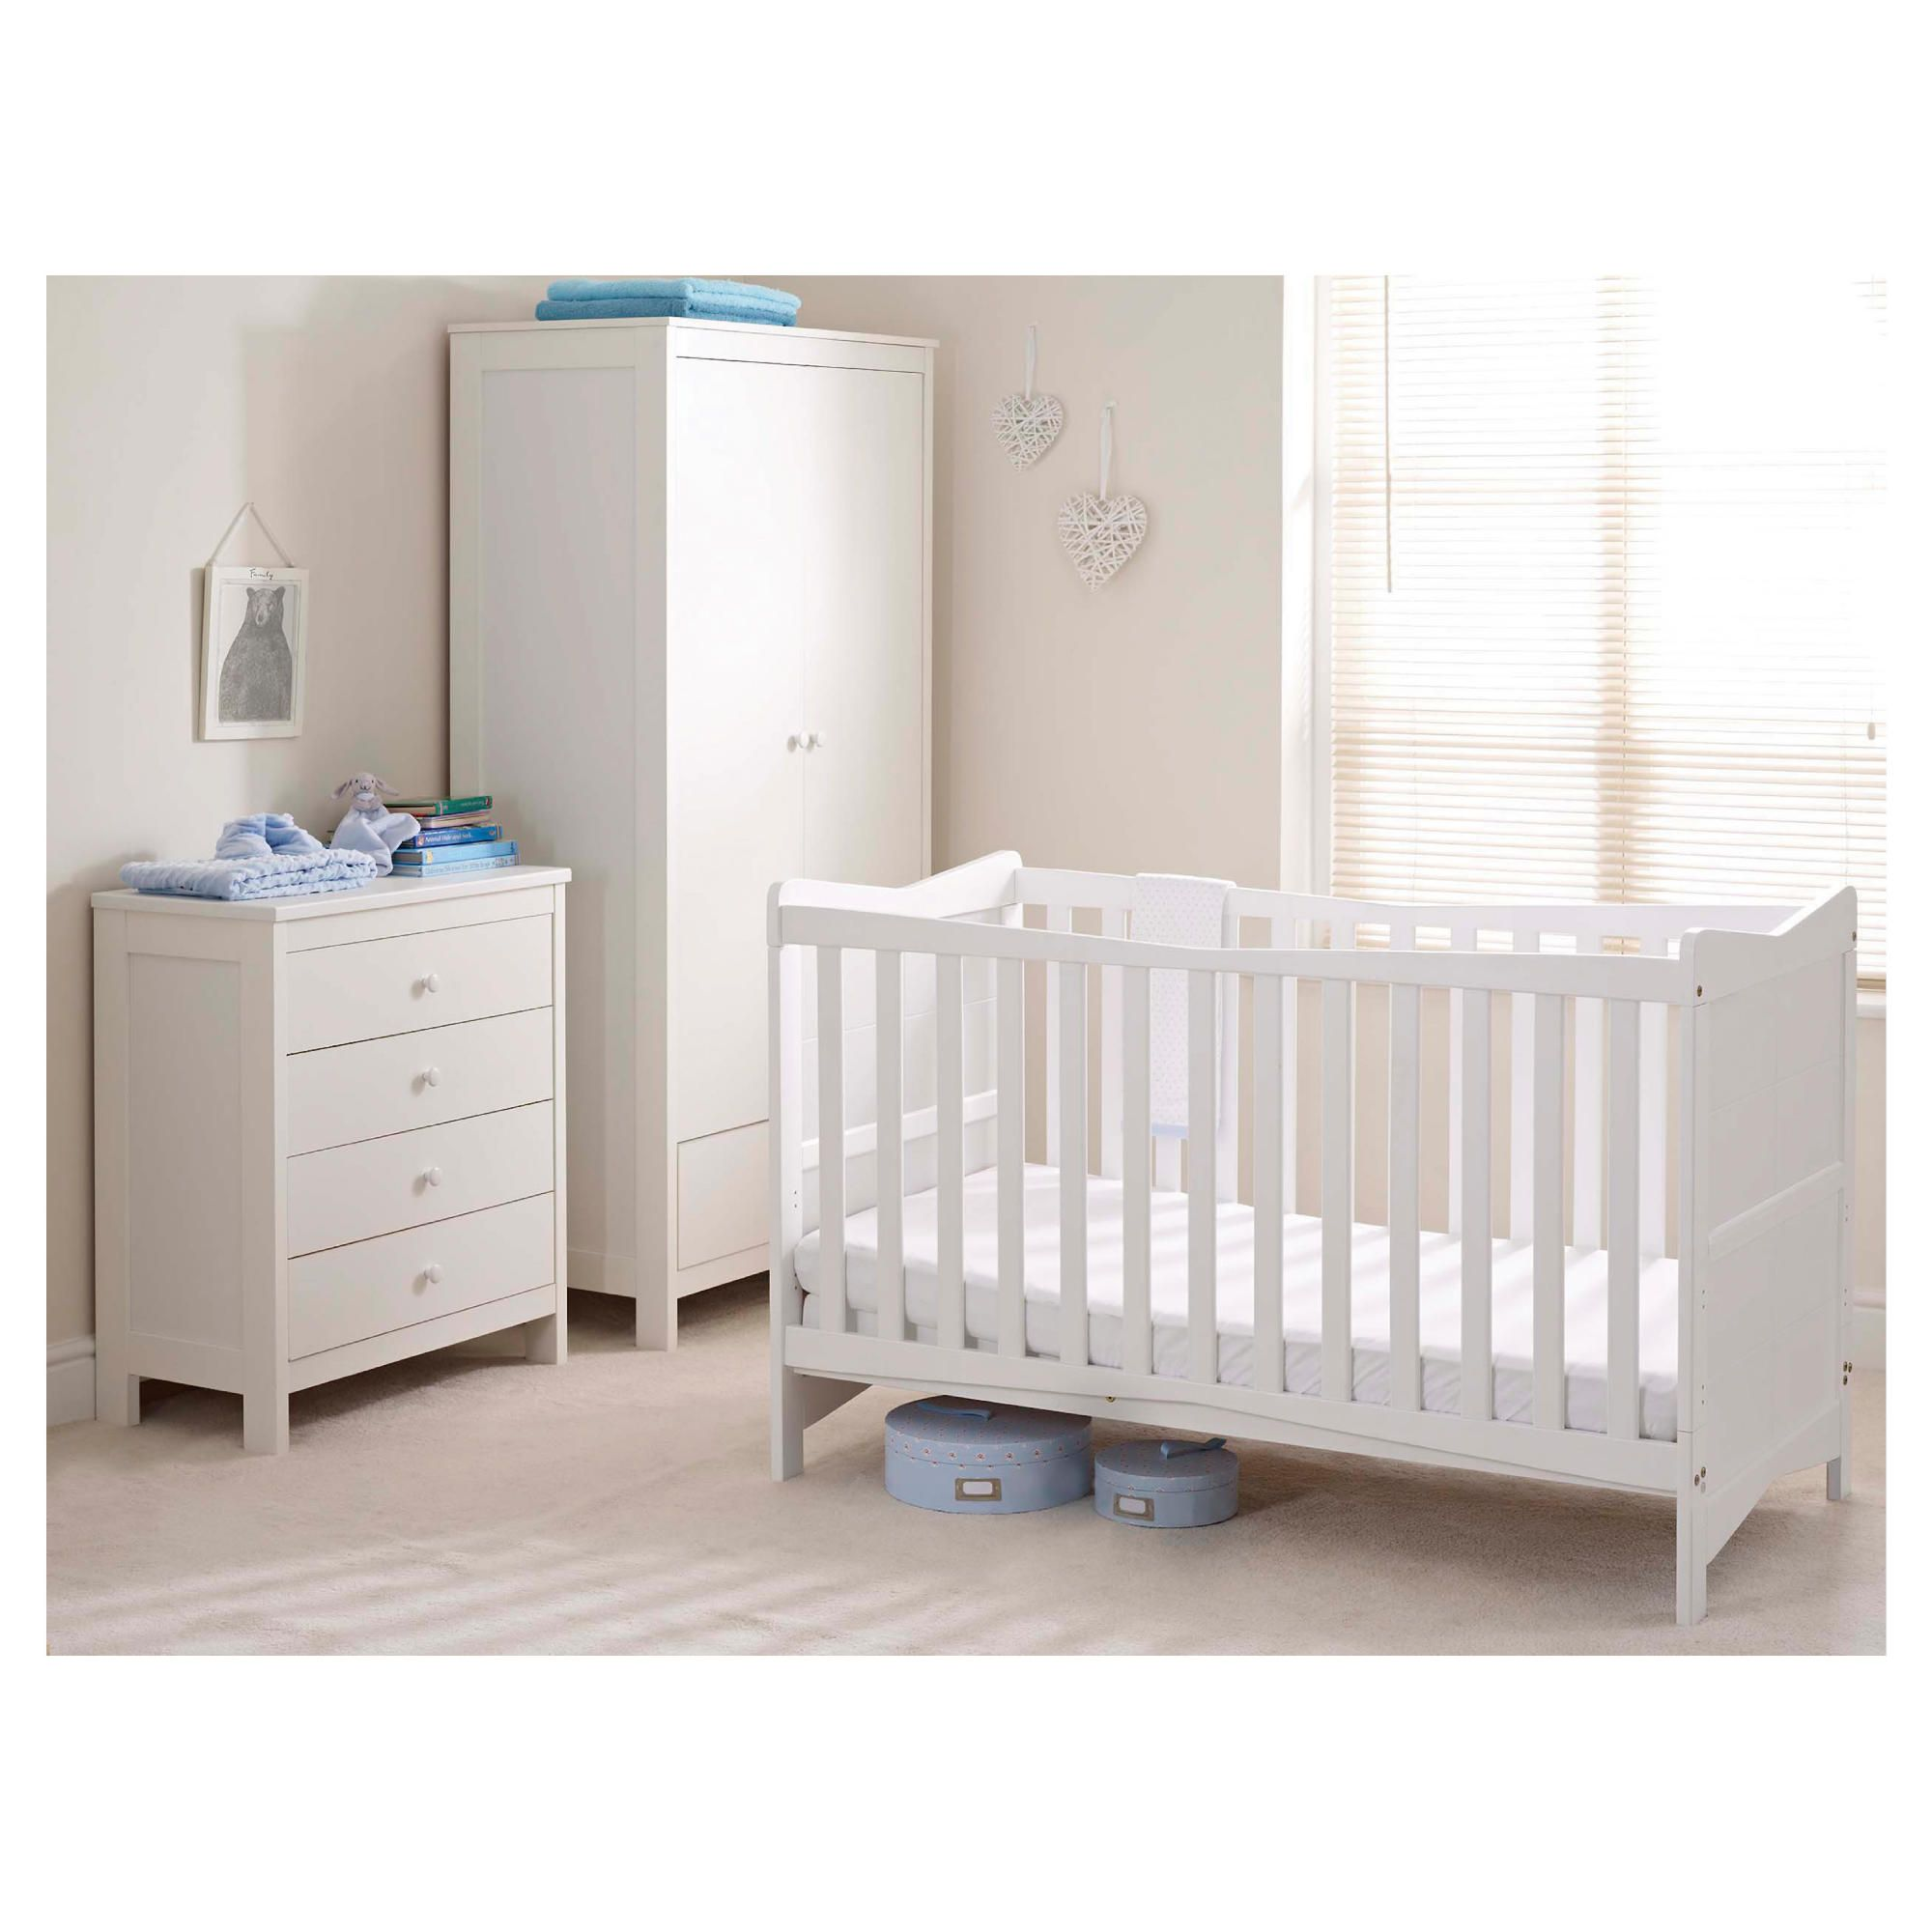 Saplings Kitty 3 piece Nursery Room Set, White at Tesco Direct